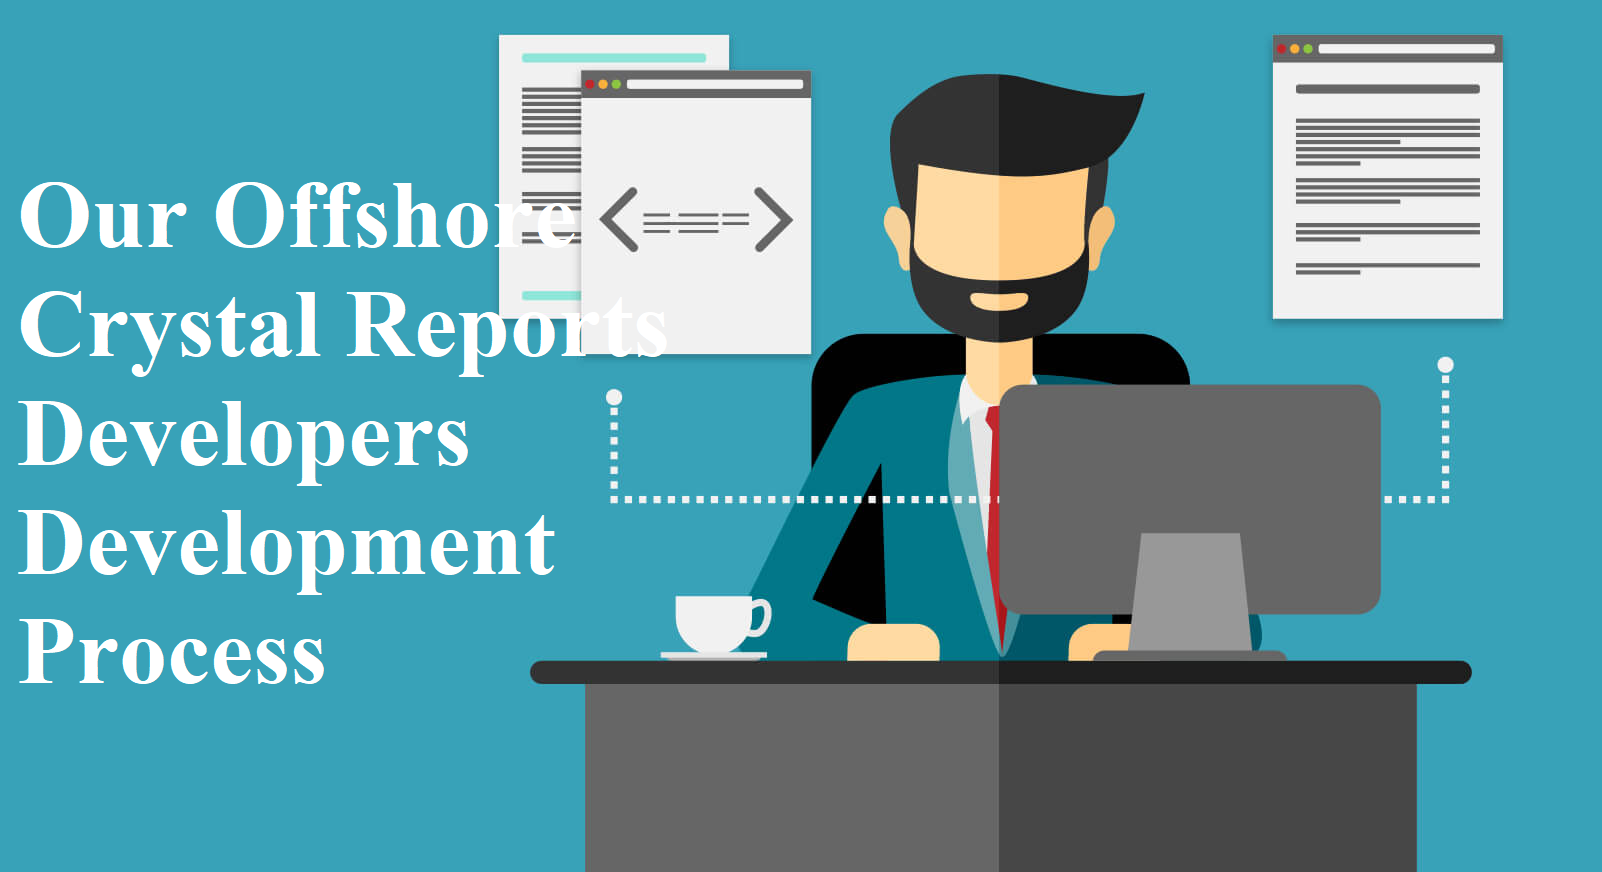 Our Offshore Crystal Reports Developers Development Process